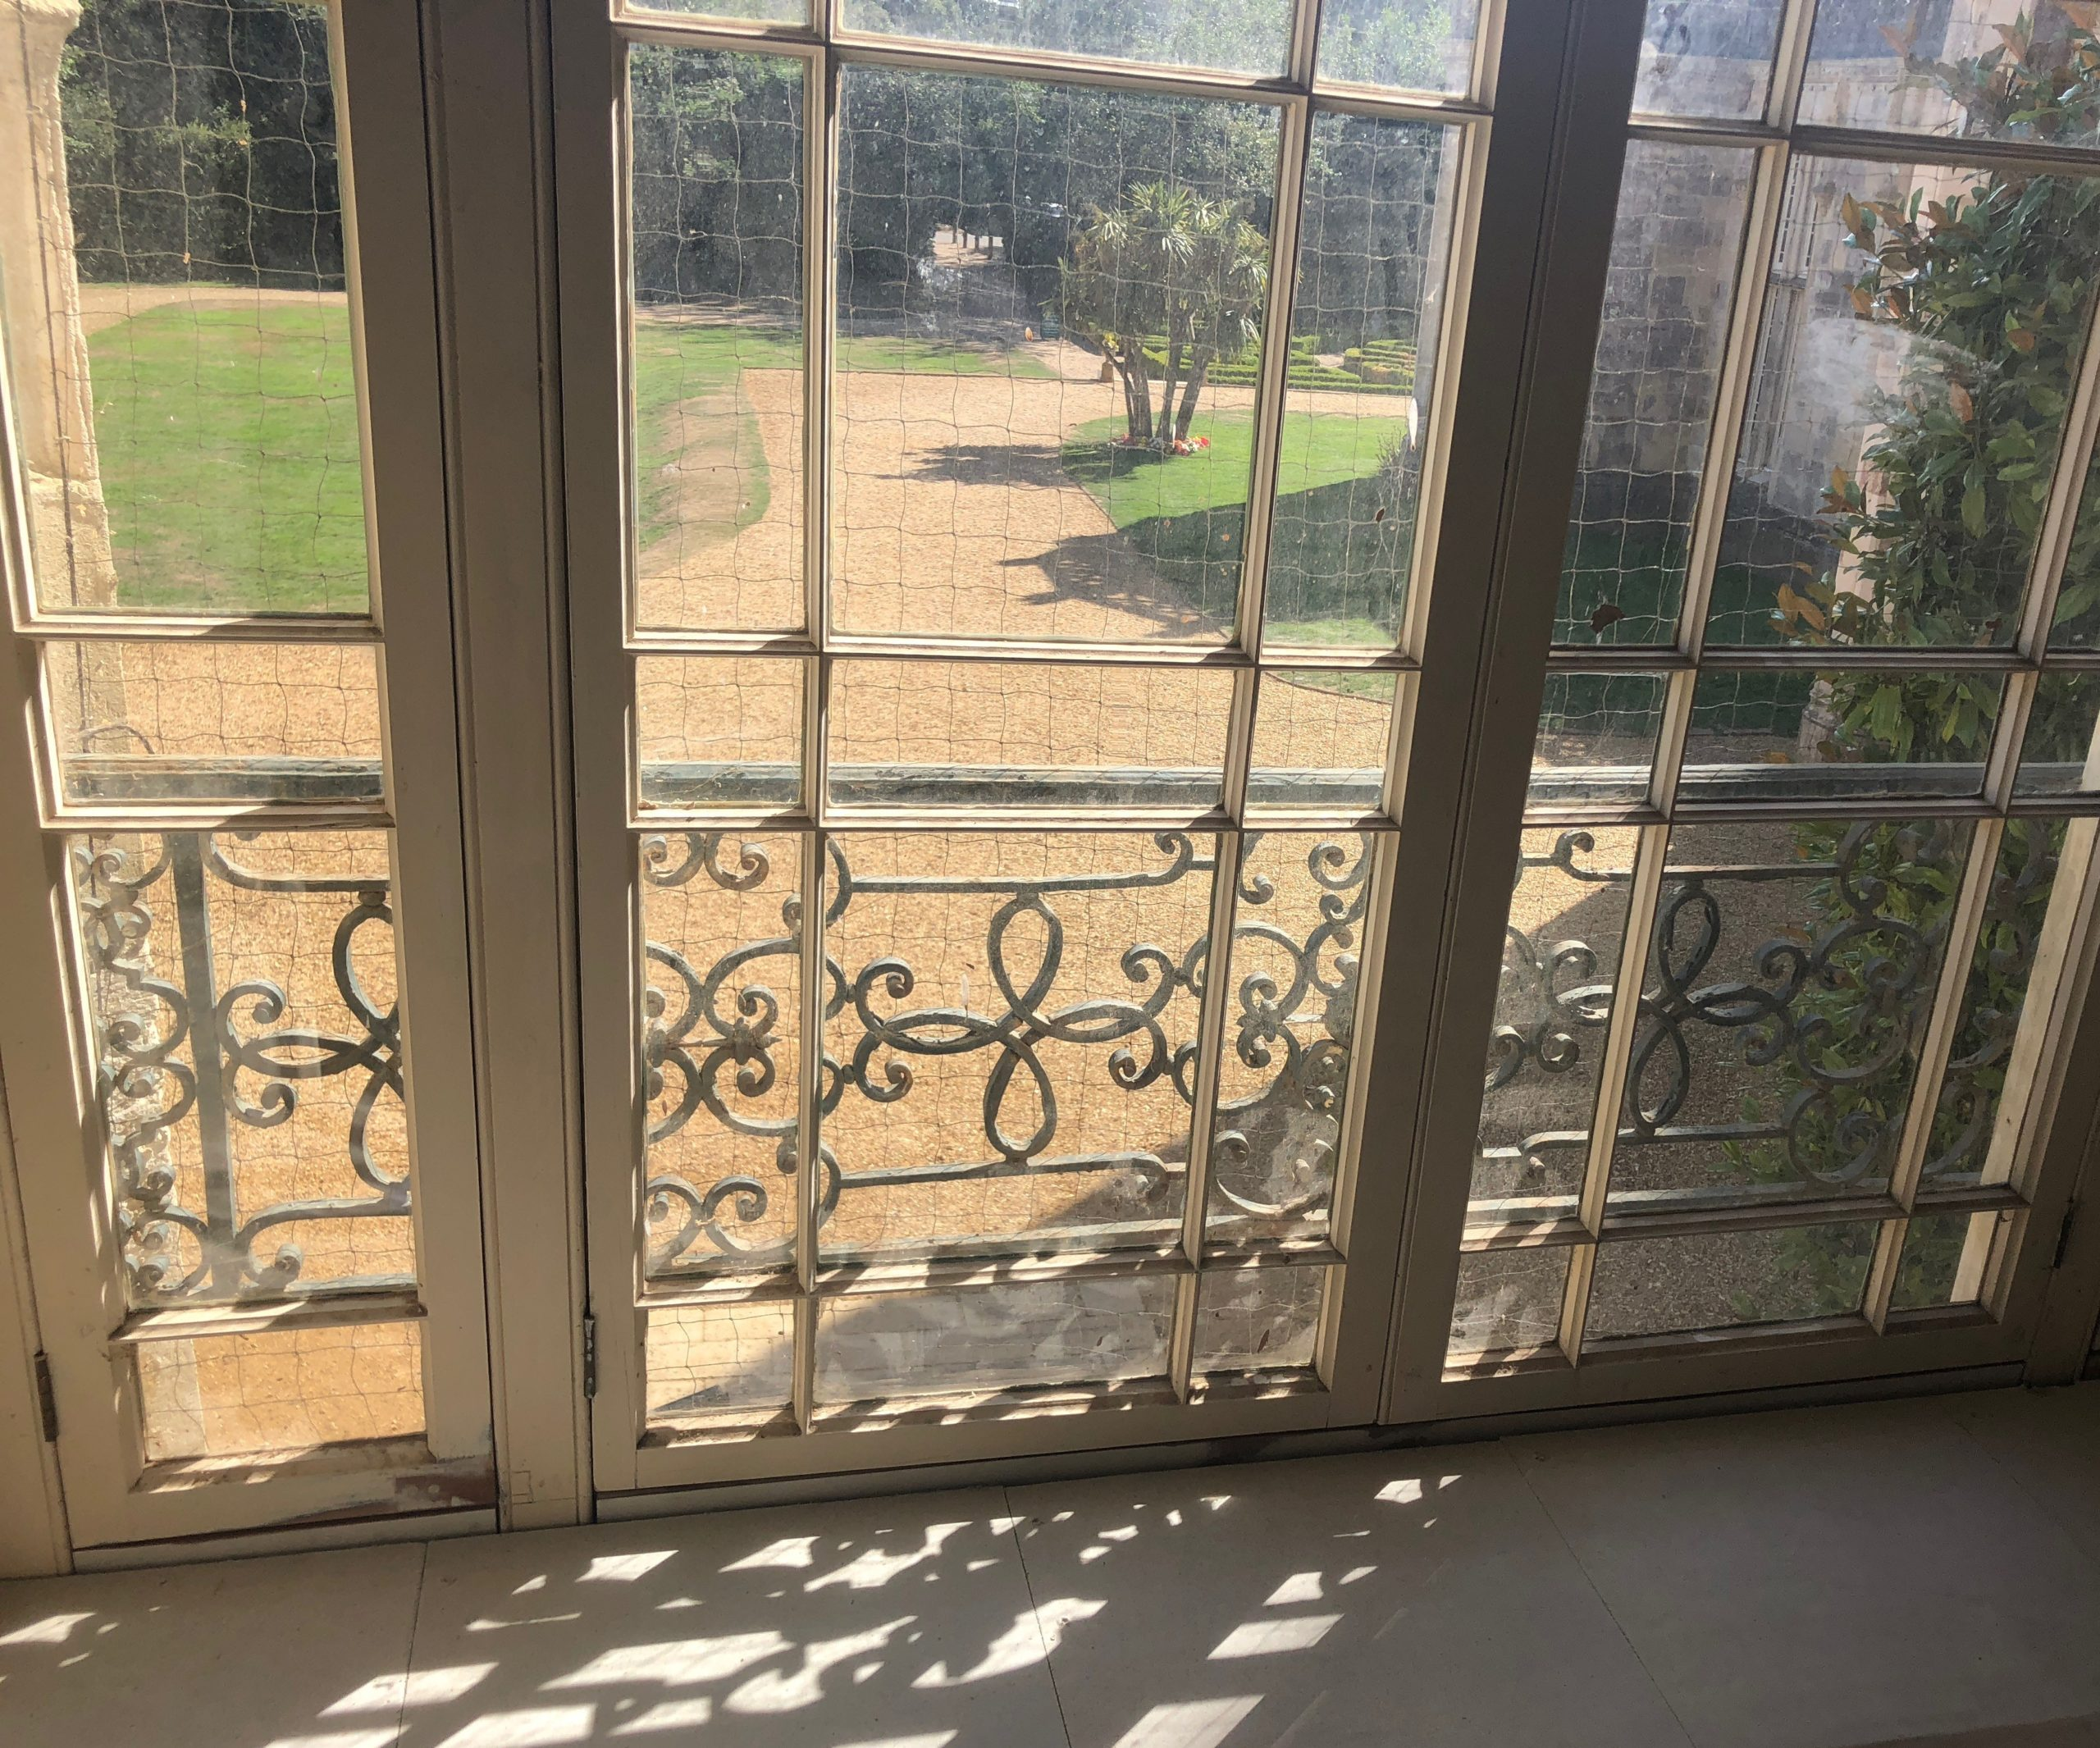 Window with ornate metal screen overlooking gravel and lawns